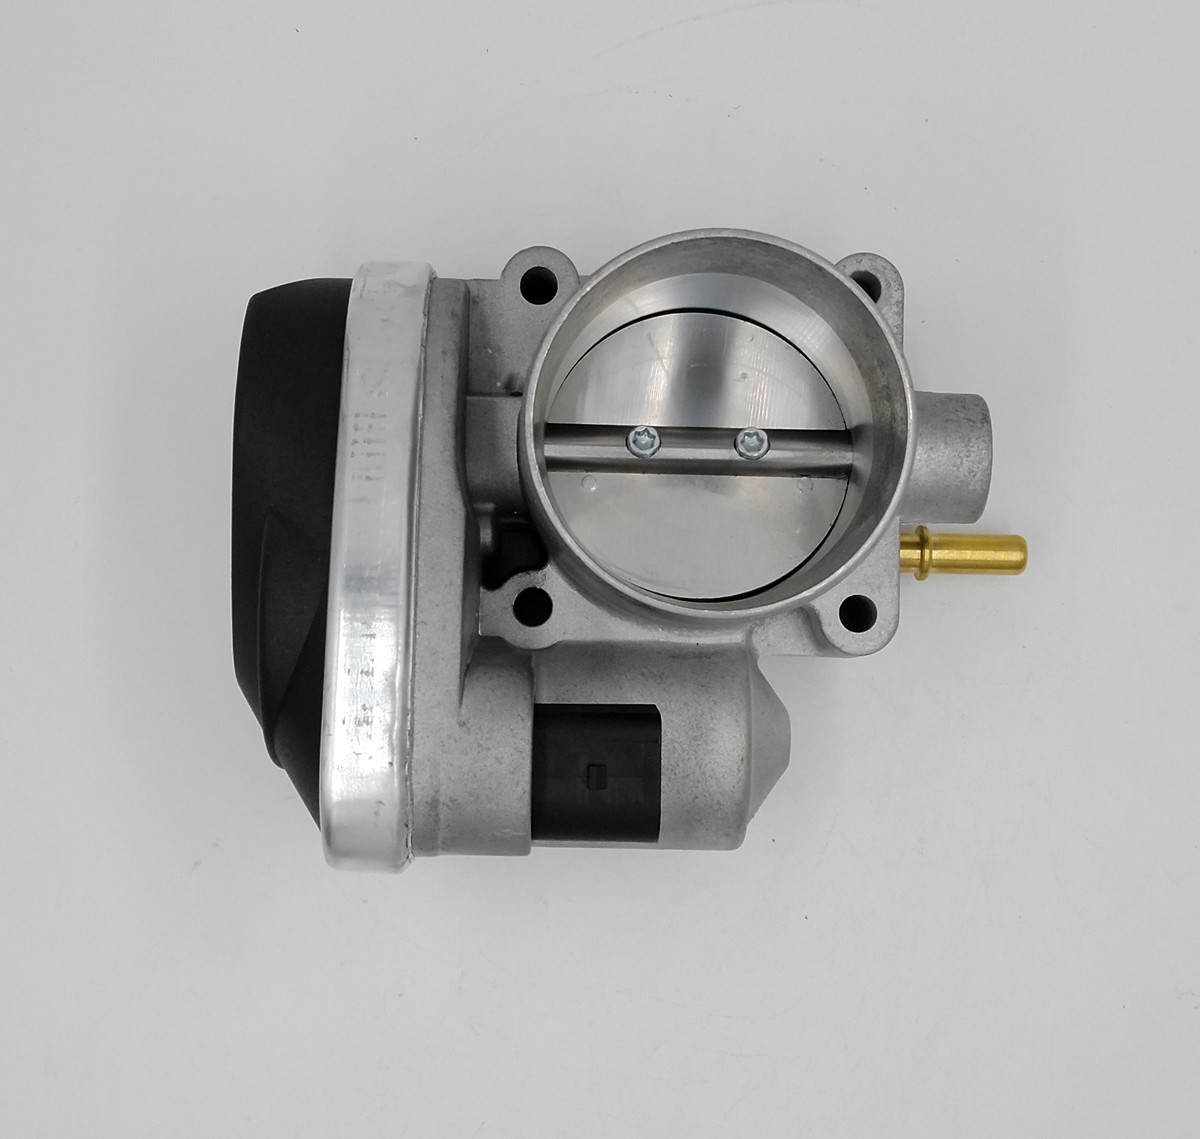 Easy Replace Fuel Injection Throttle body Assembly 408 238 827 002Z A2C59511232 8200171134 8200190230 For Renault Clio Megane